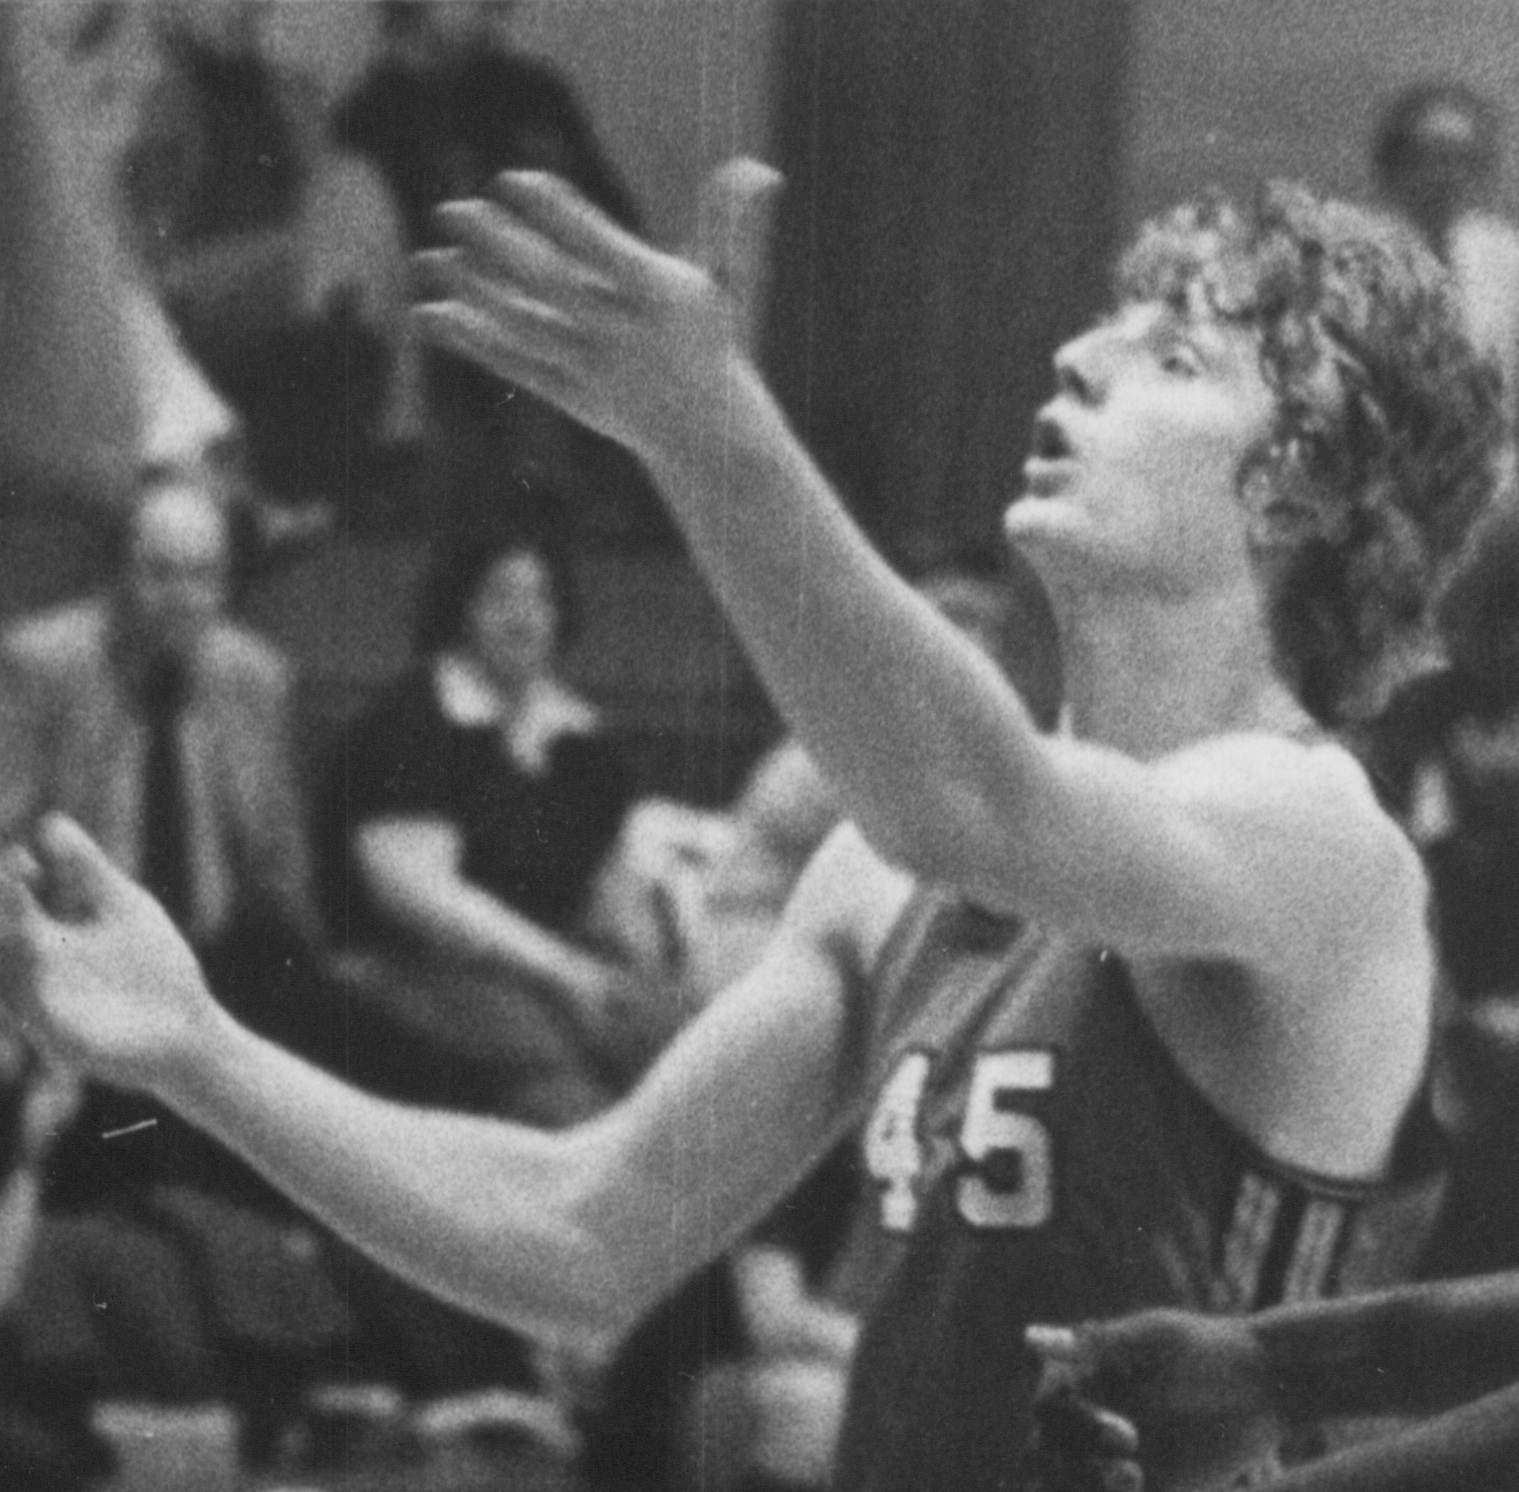 Bethany Lutheran College 1975-1976 snapshot of men's basketball player, Mike Schlomer